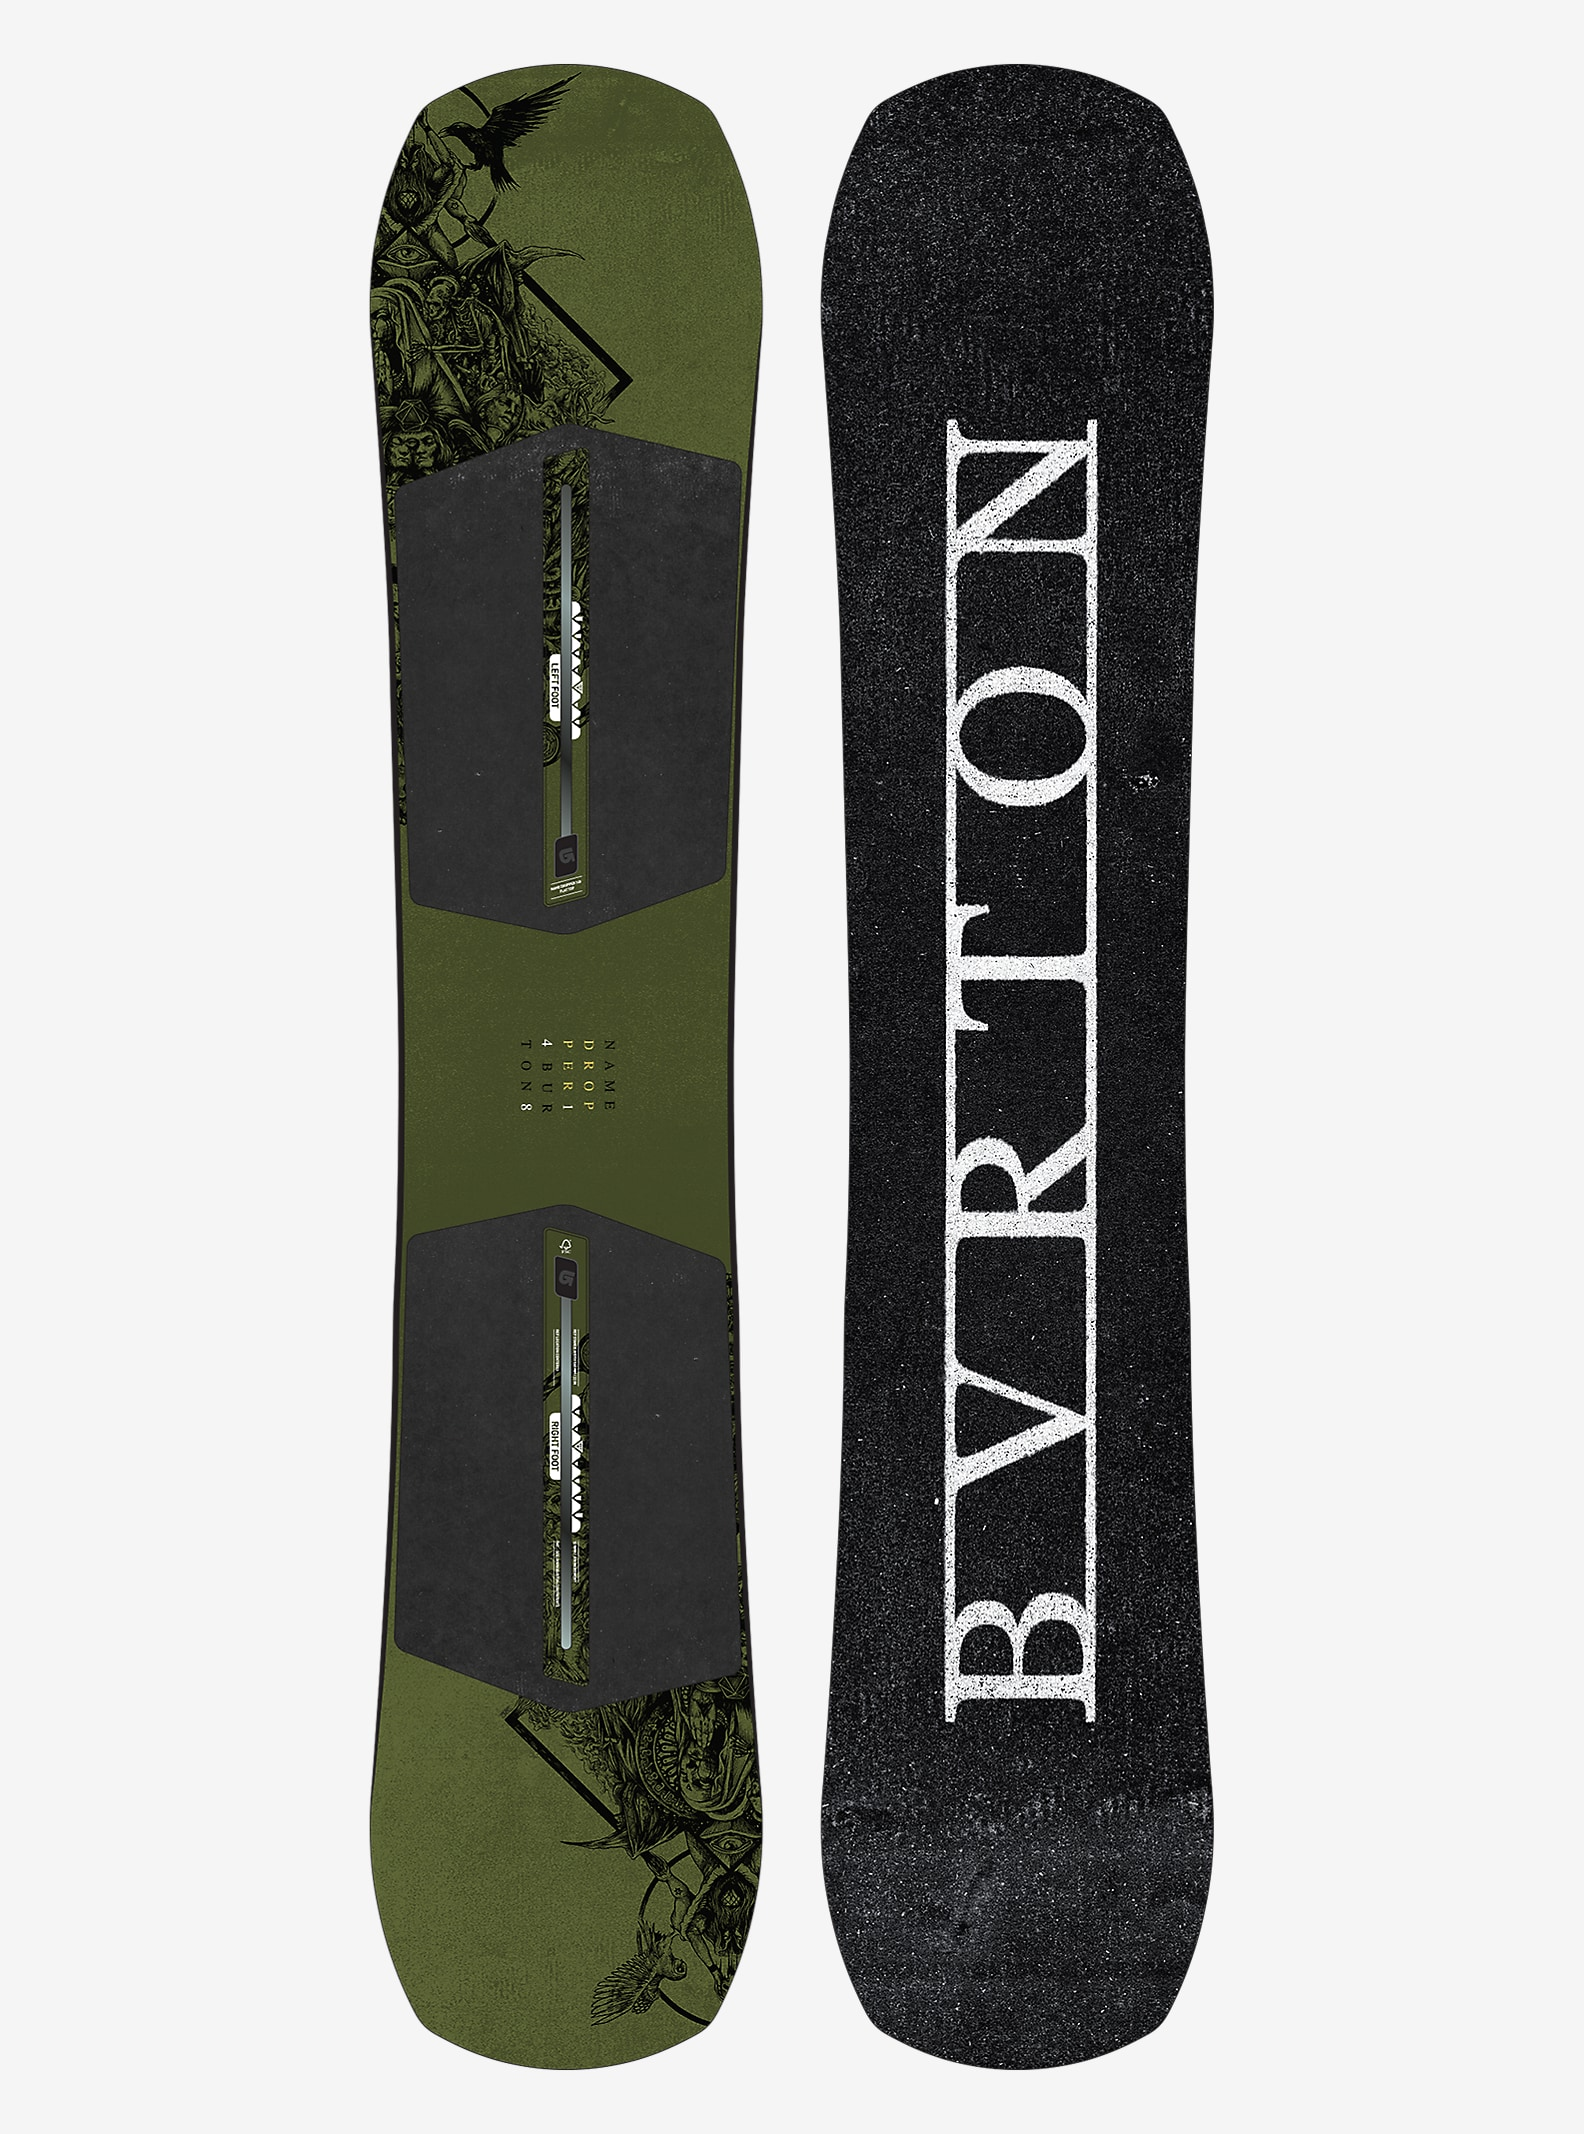 Burton Name Dropper Snowboard angezeigt in 148